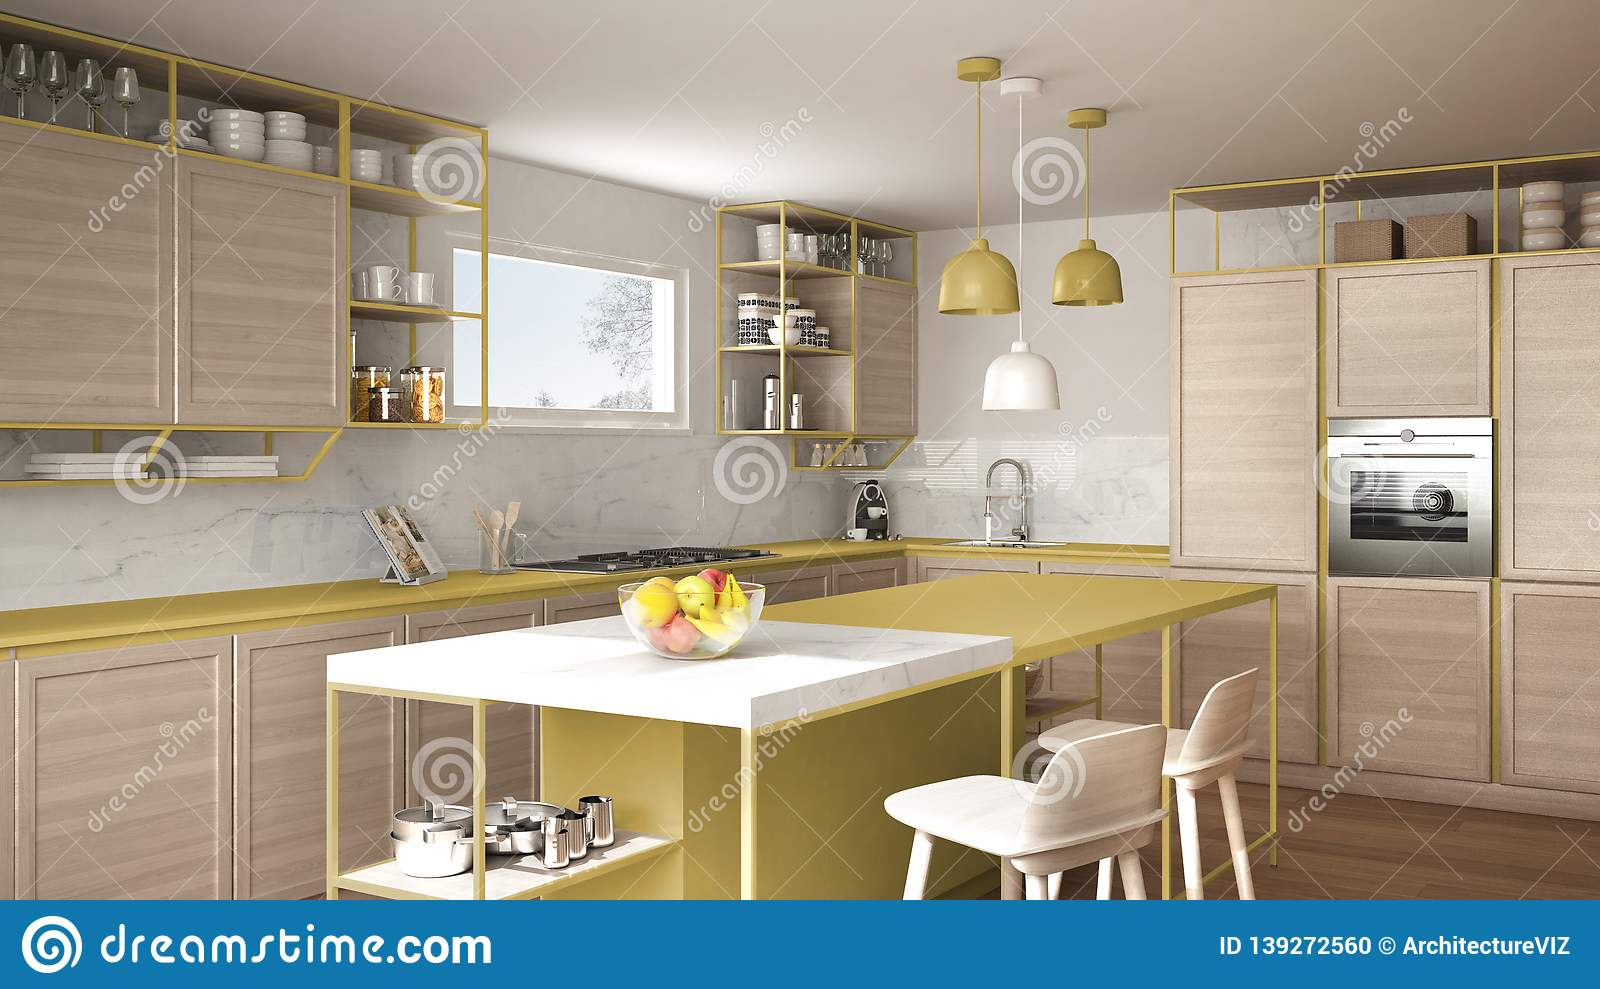 Yellow Kitchen Interior Stock Illustrations 3 569 Yellow Kitchen Interior Stock Illustrations Vectors Clipart Dreamstime